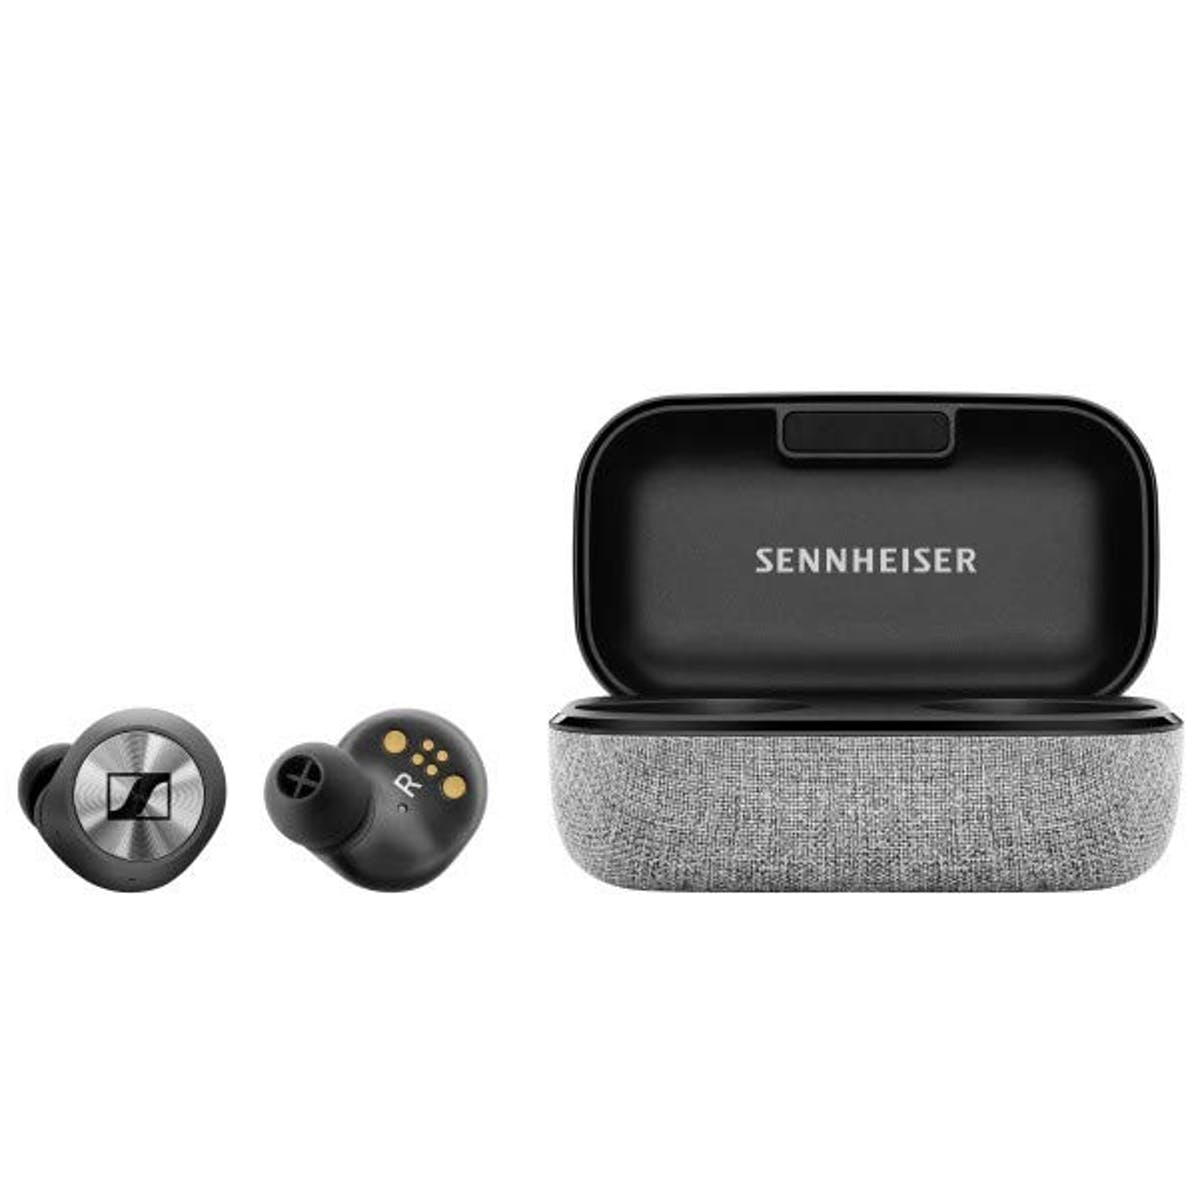 The Best Wireless Earbuds for Audio Quality